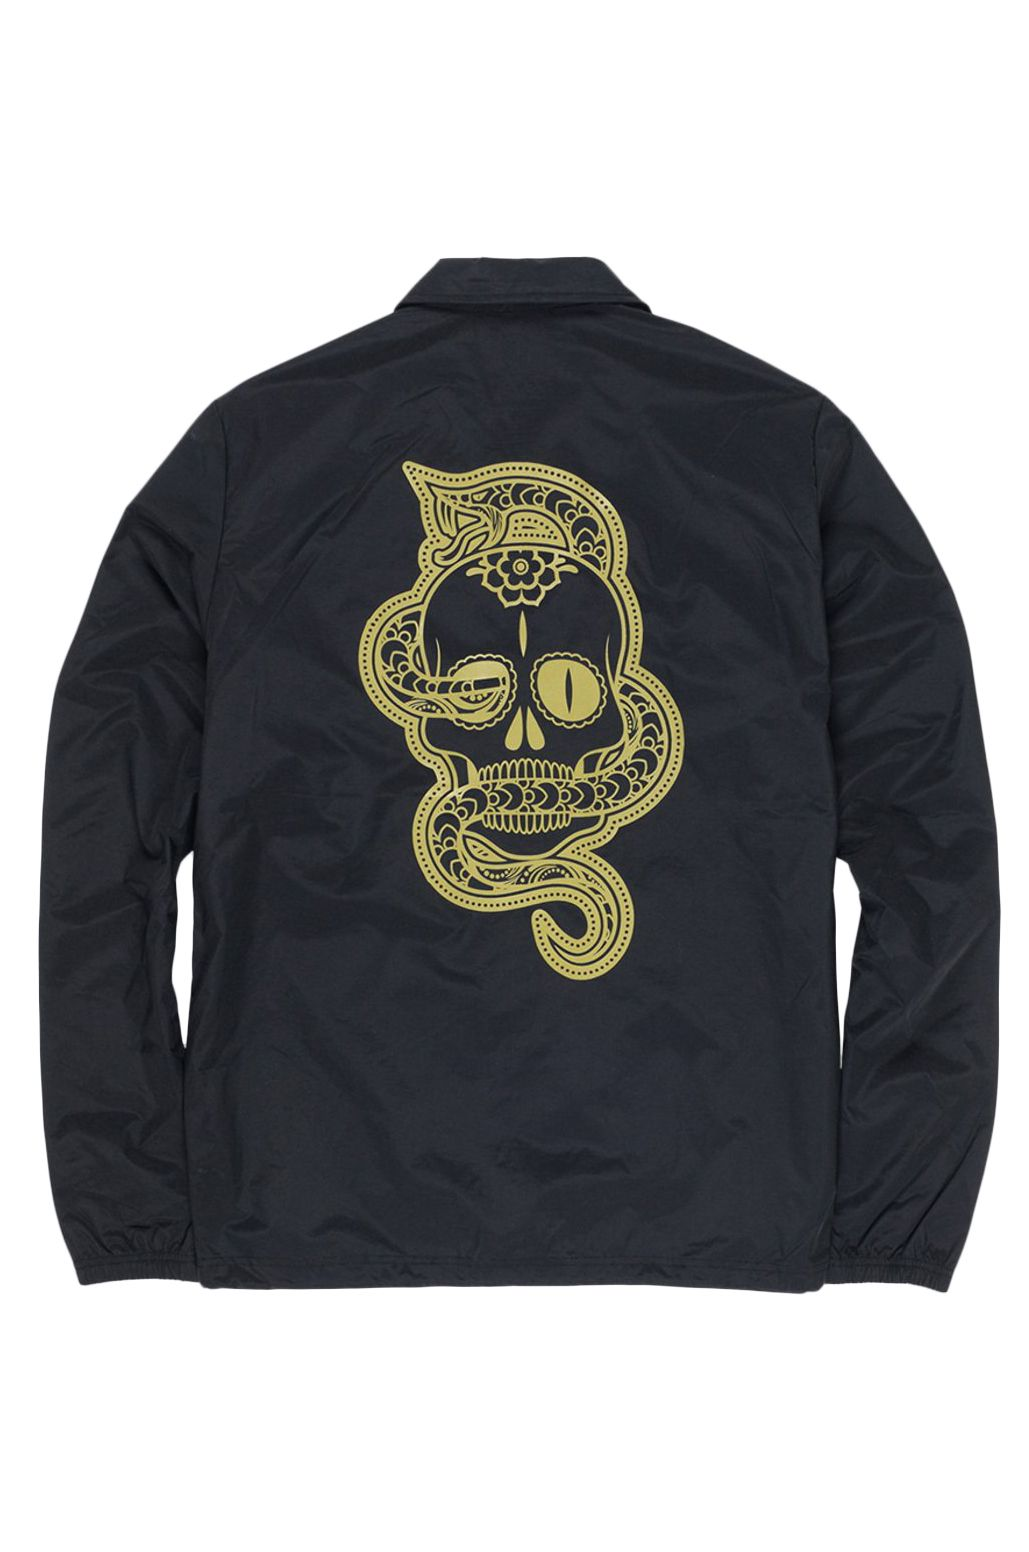 Element Jacket ABYSS COACH DAY OF THE DEAD Flint Black